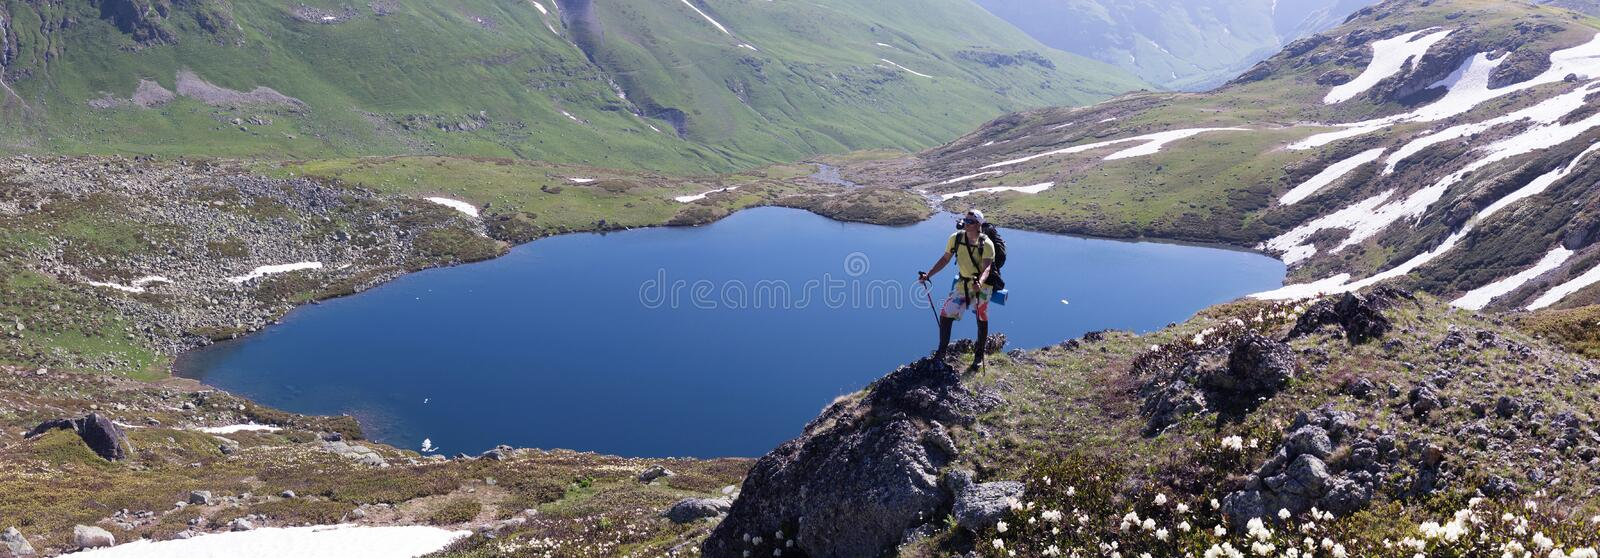 Traveling man on a background of alpine meadows with a lake. stock photo